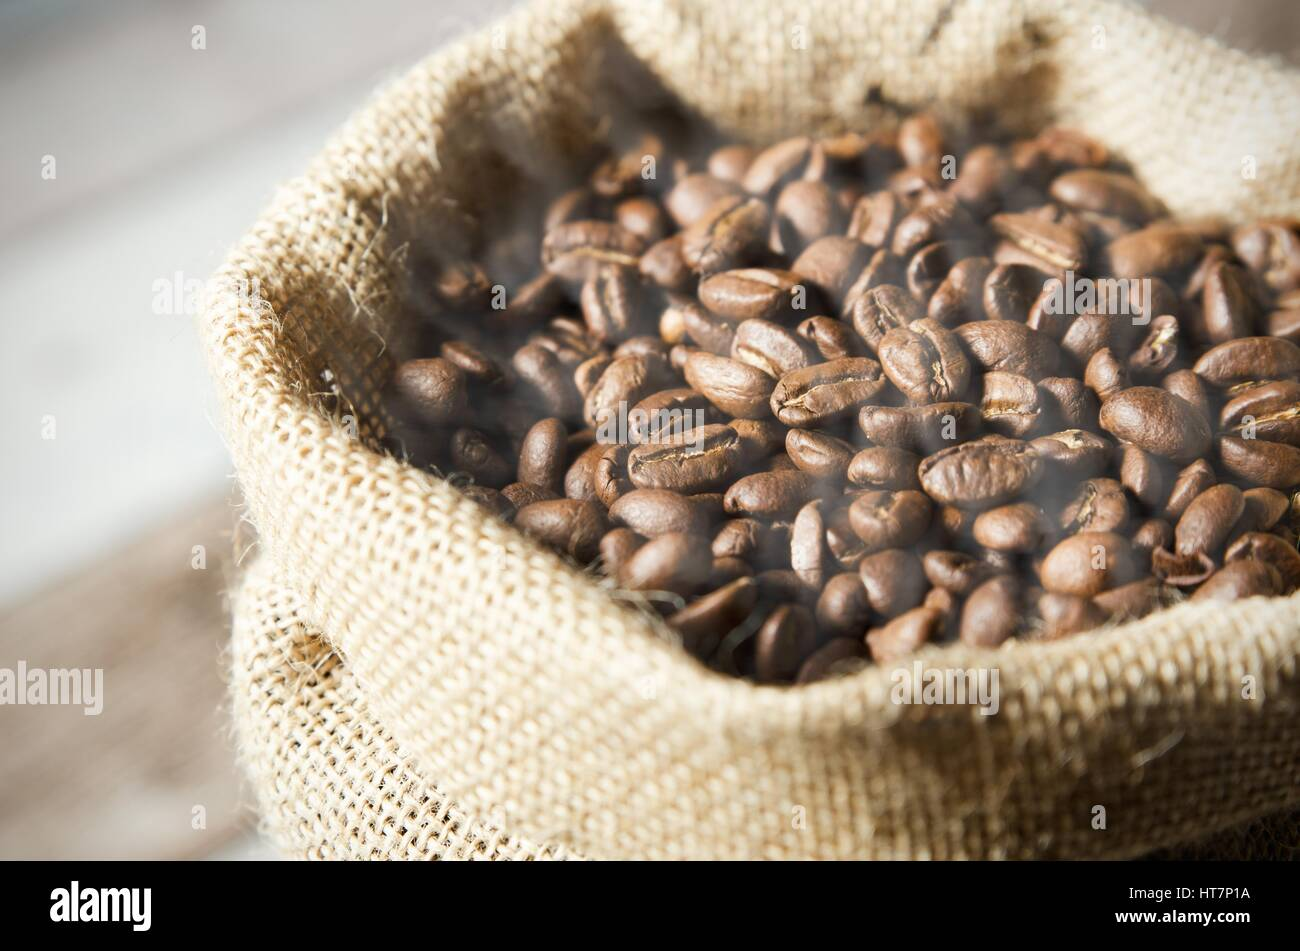 Close up coffee beans in jute bag on wooden table - Stock Image